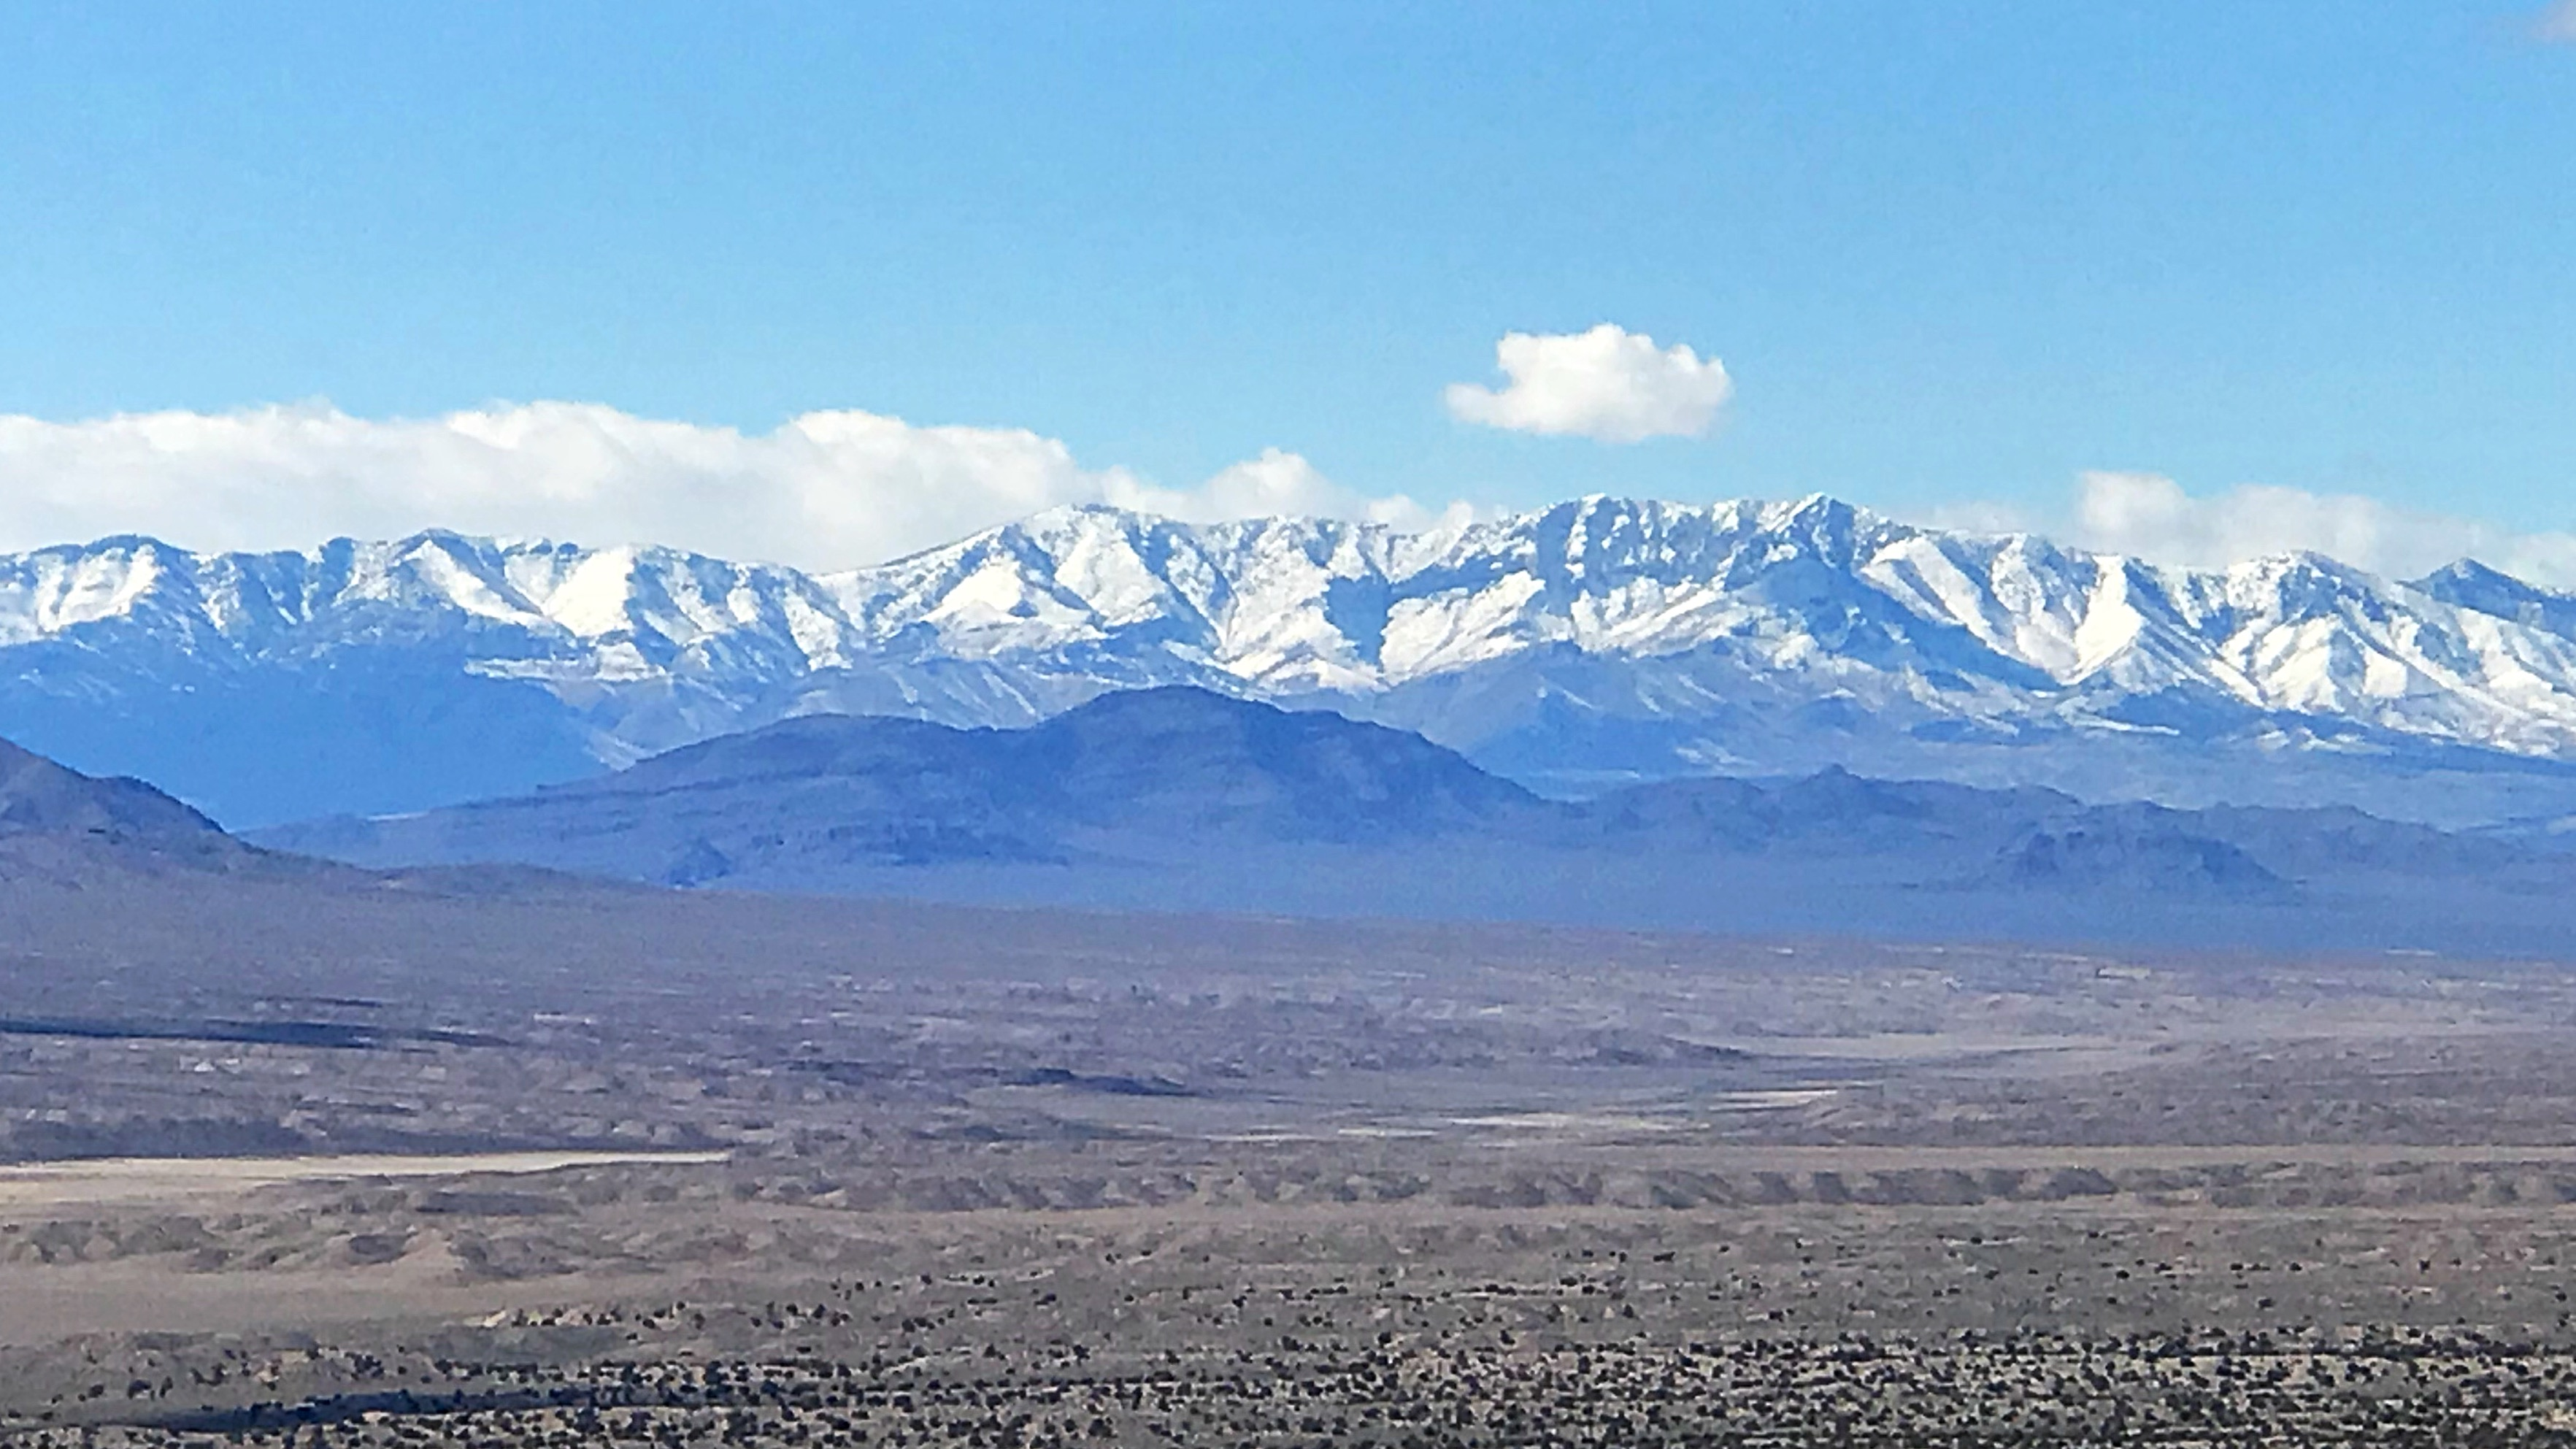 The higher south central Nevada mountains are still snow bound in mid-March.